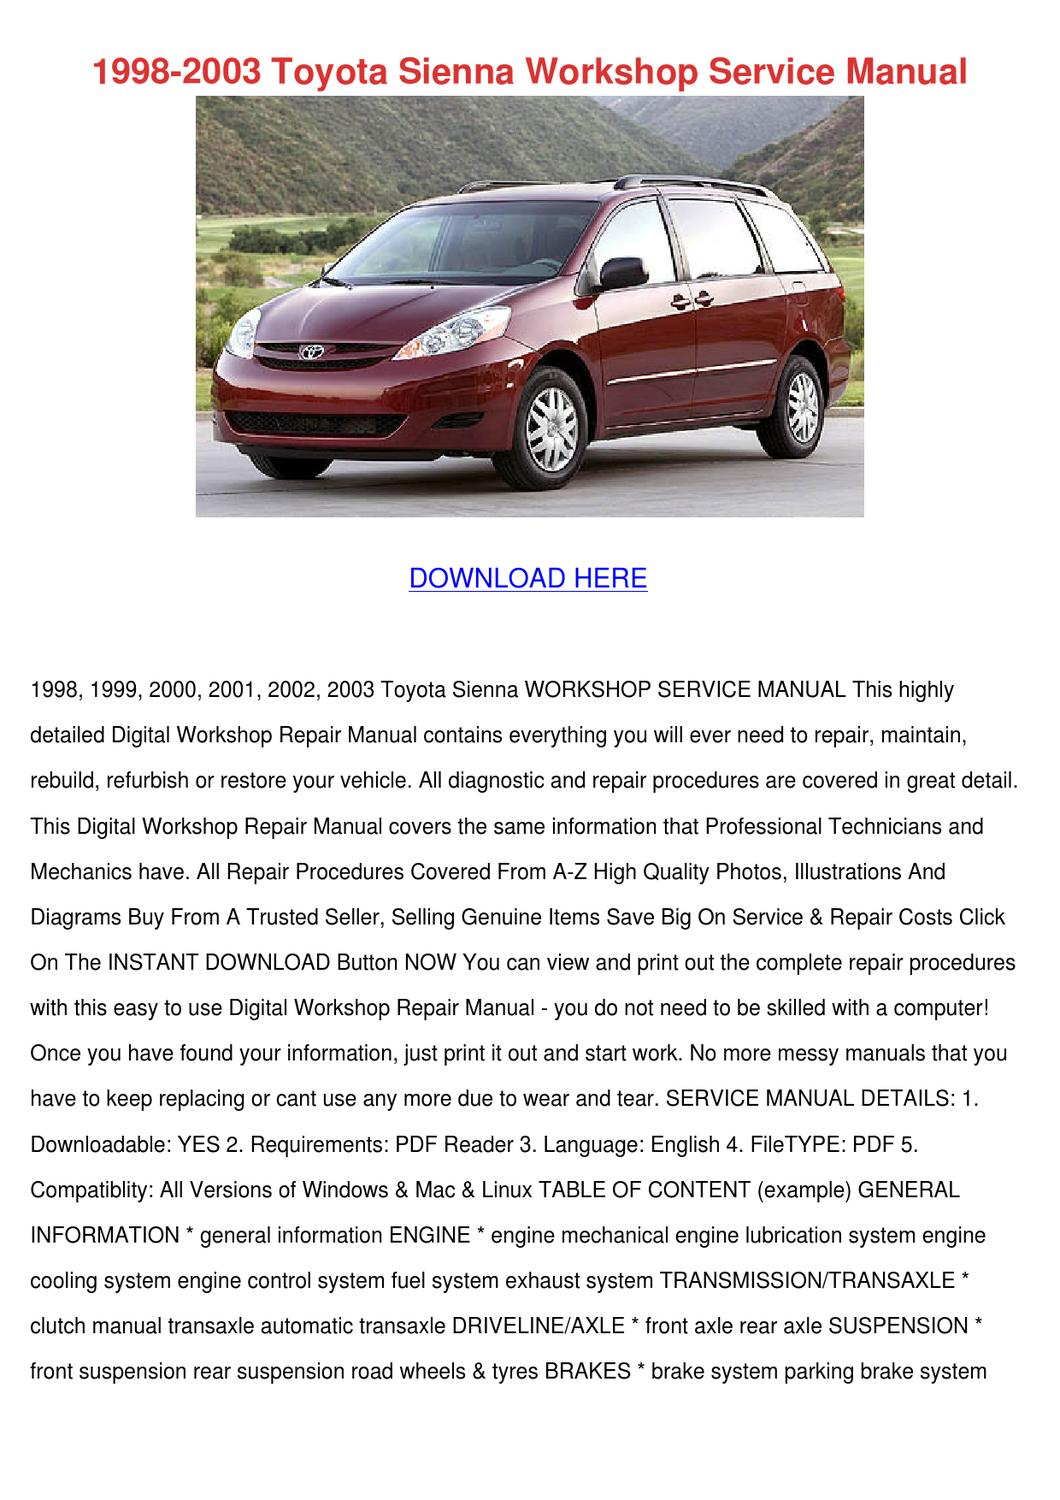 Toyota Sienna Service Manual: Stop light switch